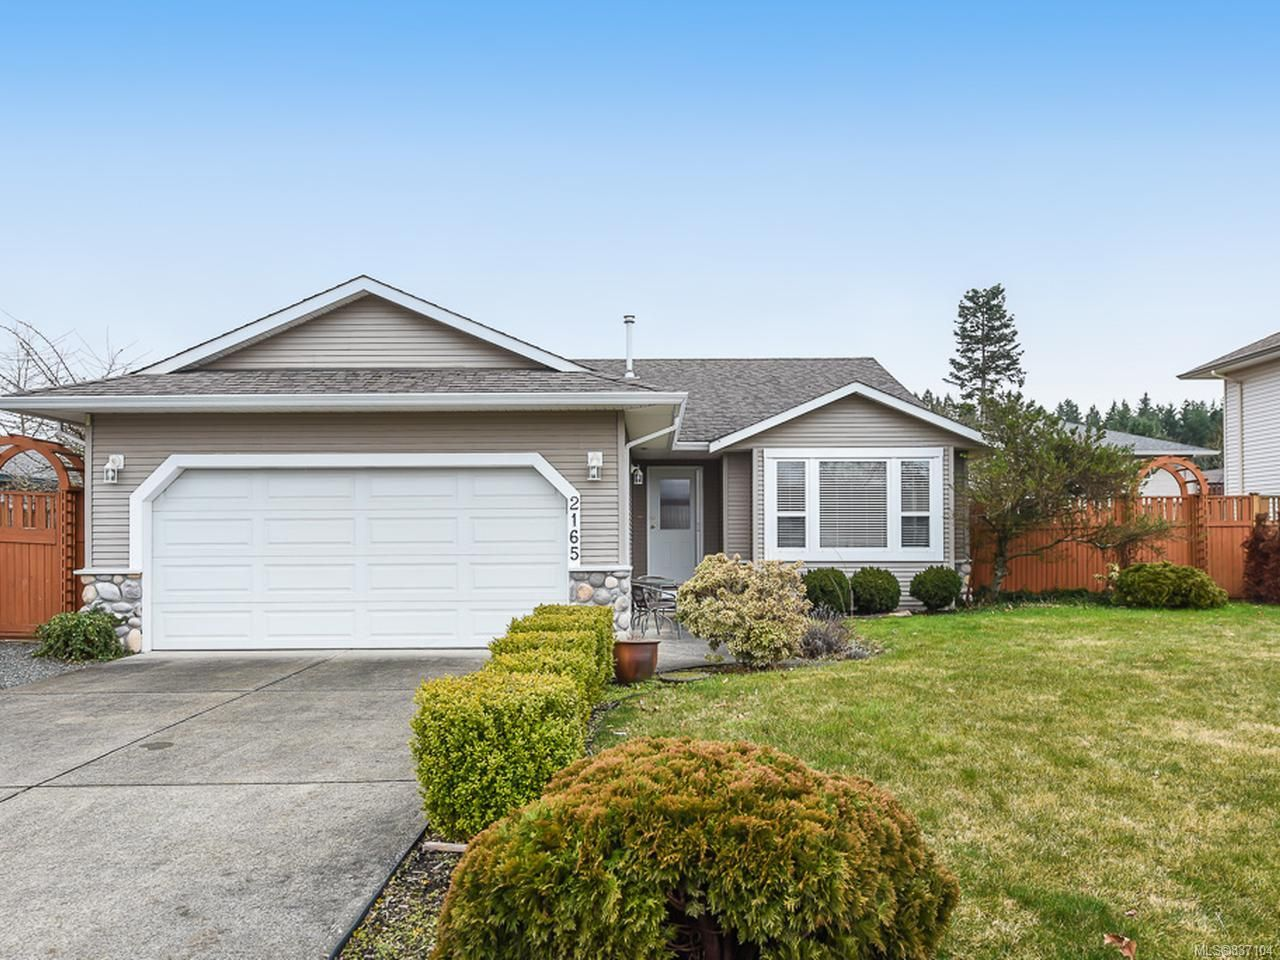 Main Photo: 2165 Hawk Dr in COURTENAY: CV Courtenay East House for sale (Comox Valley)  : MLS®# 837104